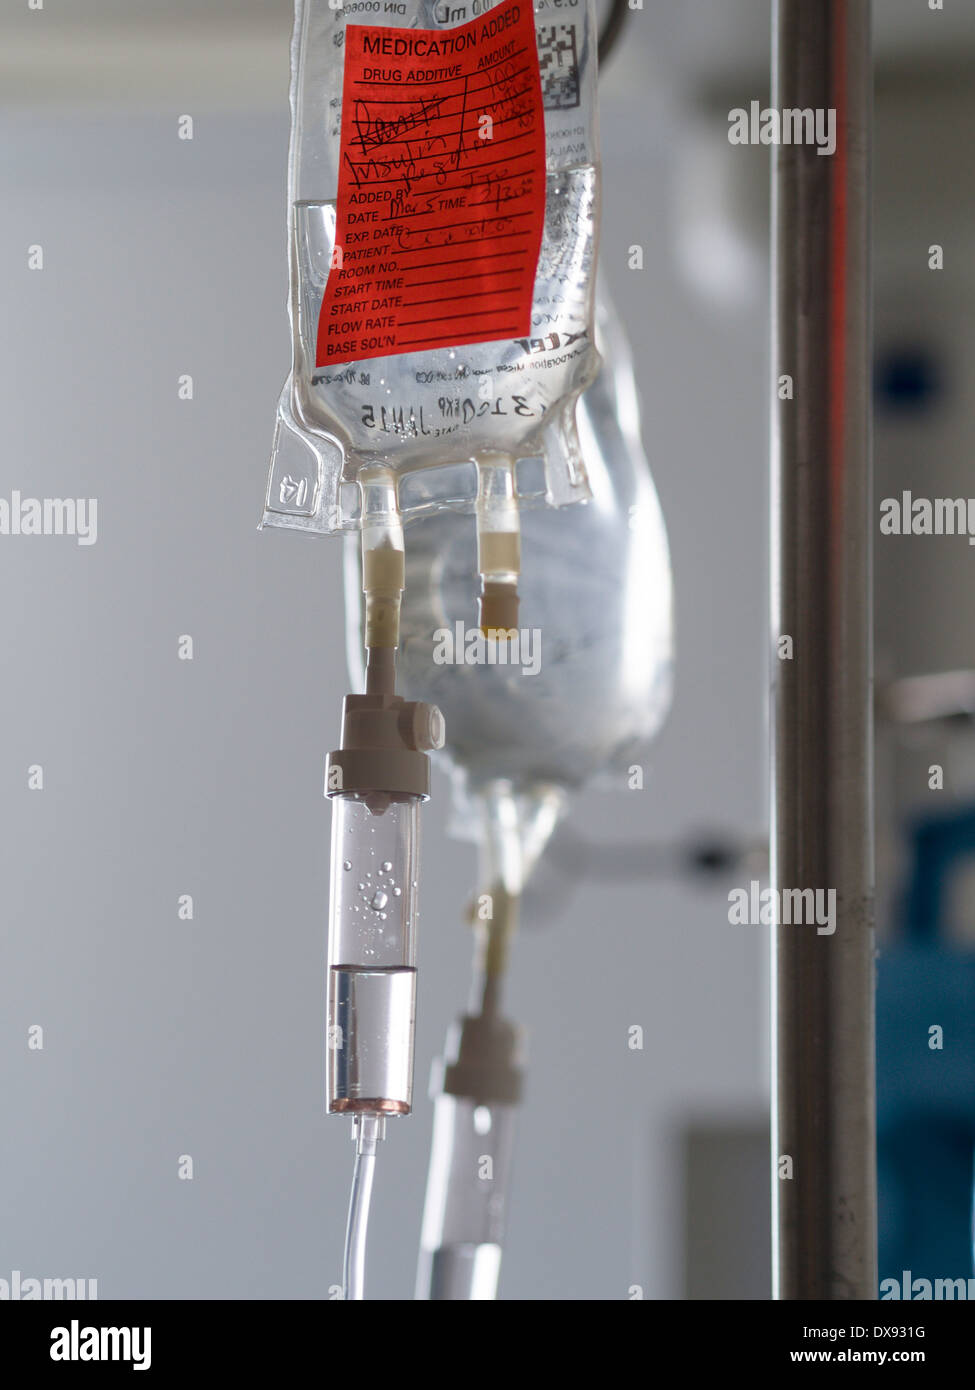 Insulin Intravenous Drip bag. A saline drip with added insulin hangs in a hospital ICU room. - Stock Image